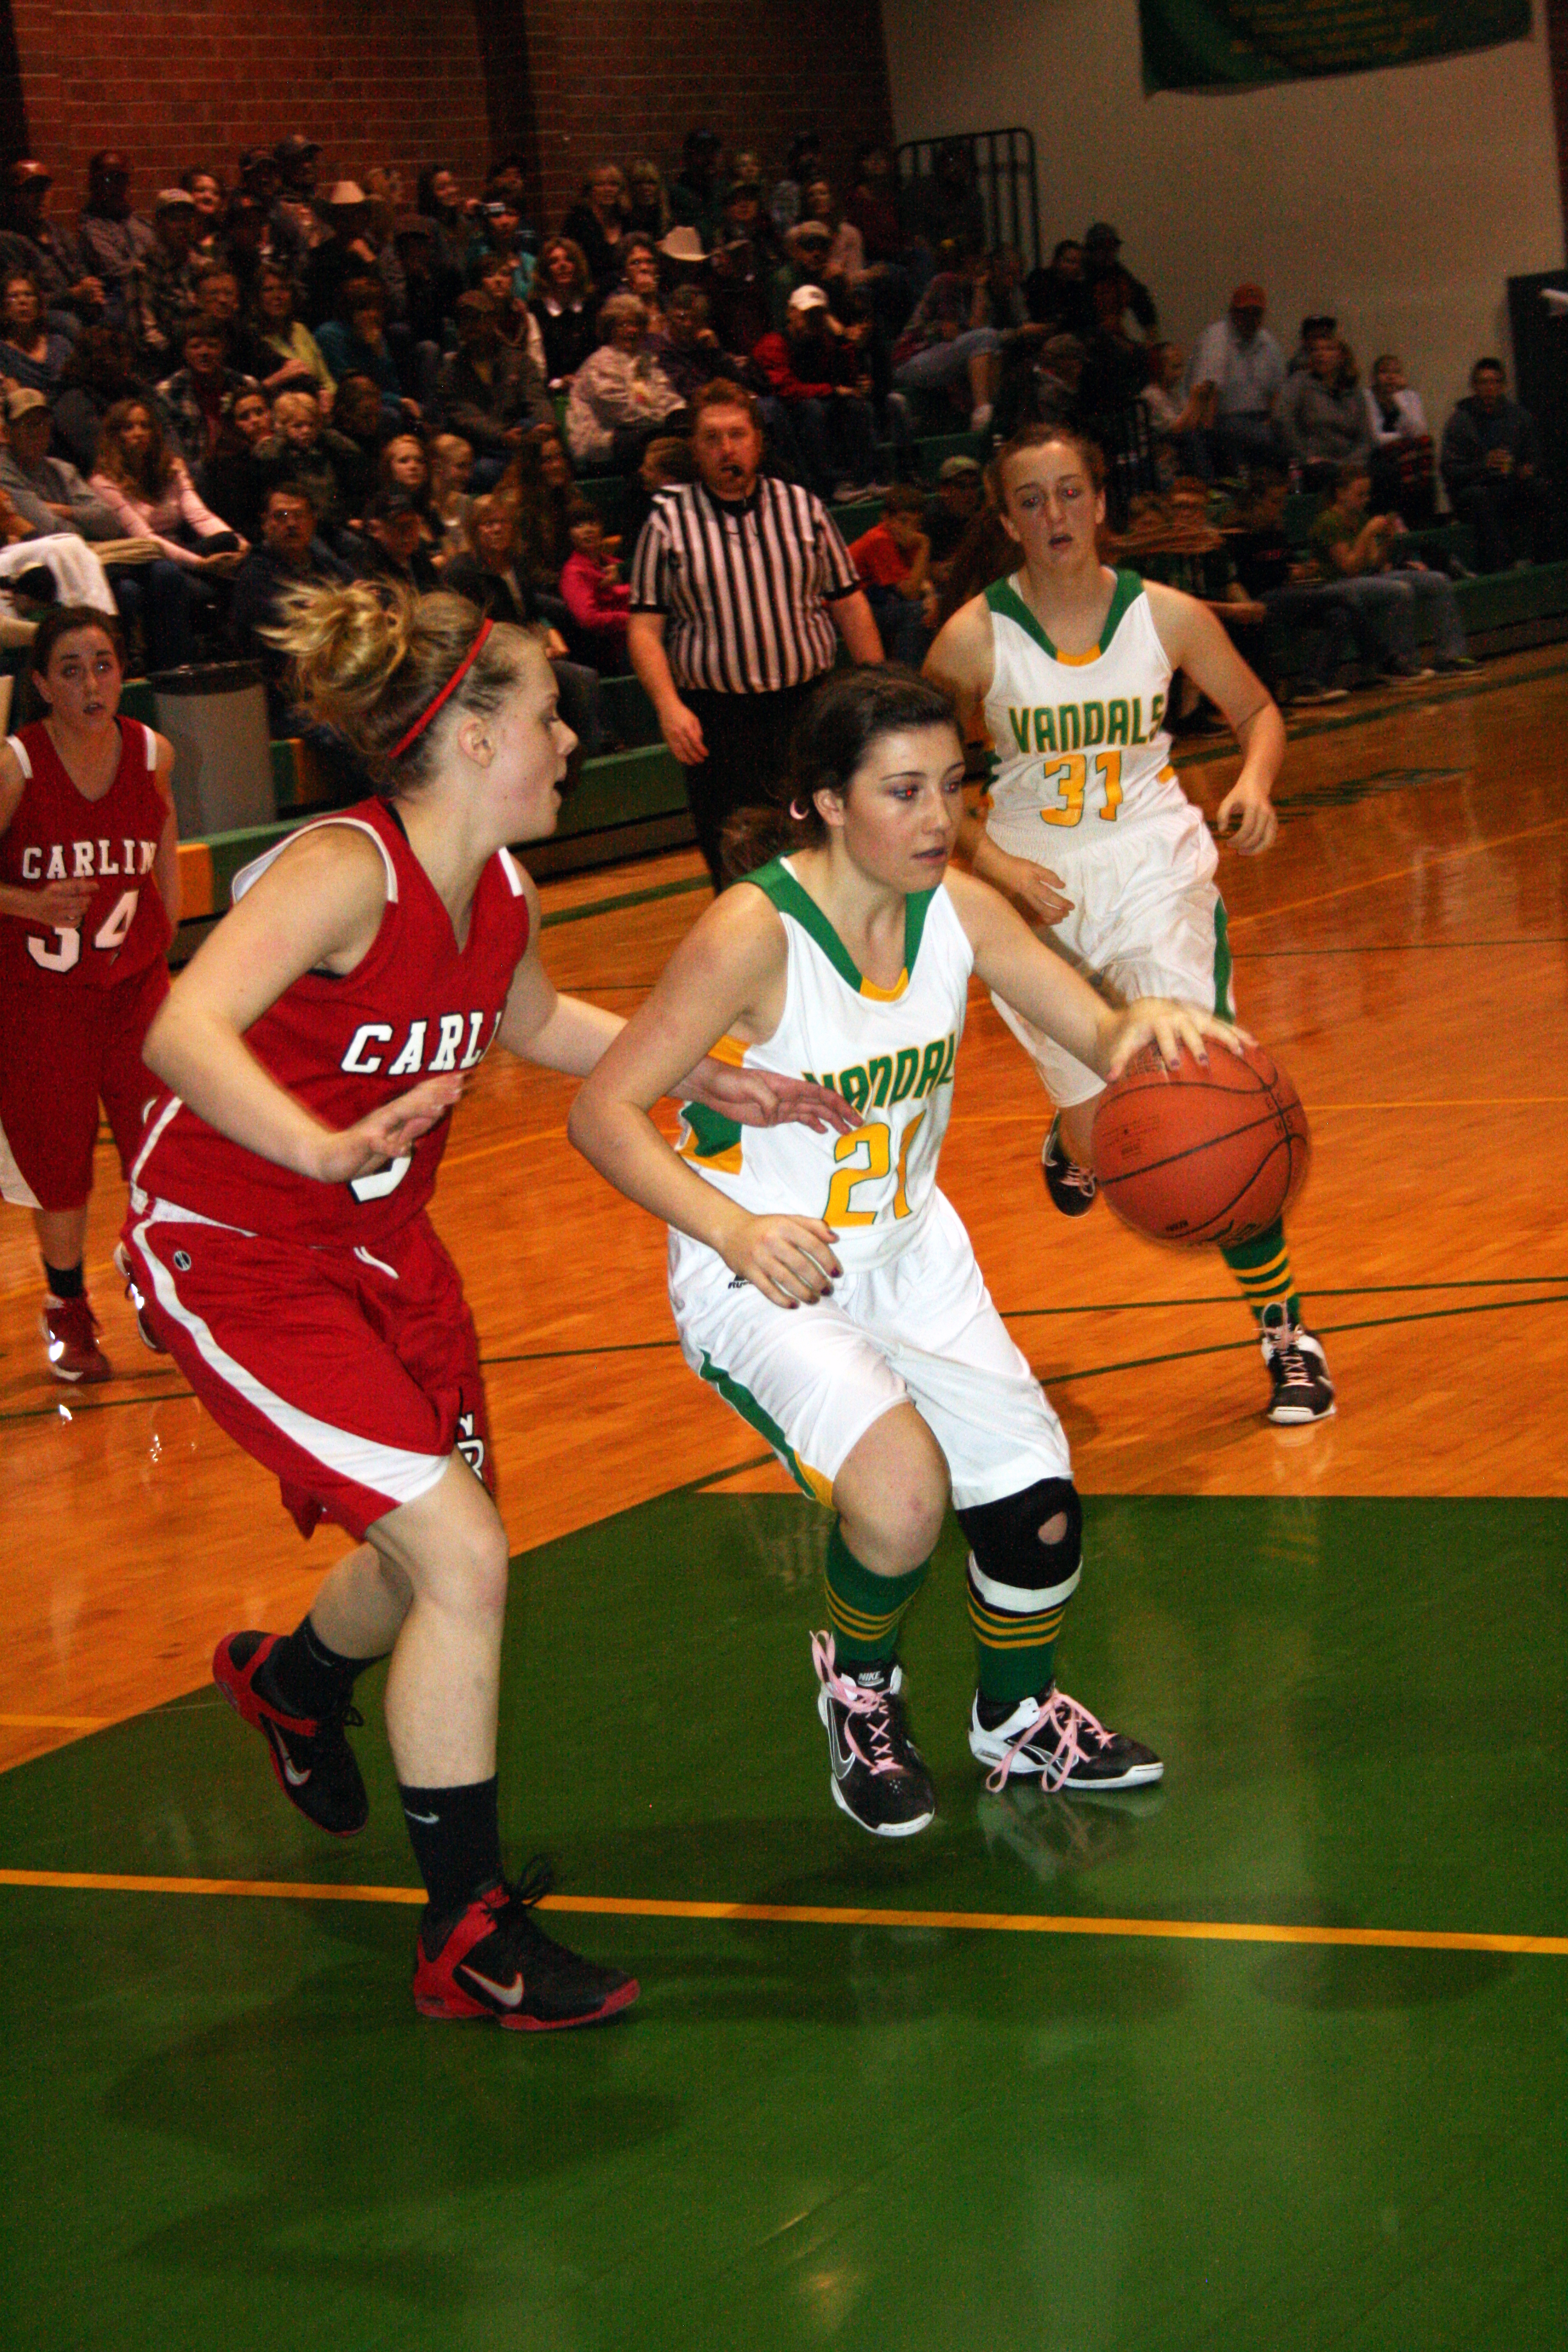 With wins, Lady Vandals run record to 13-1